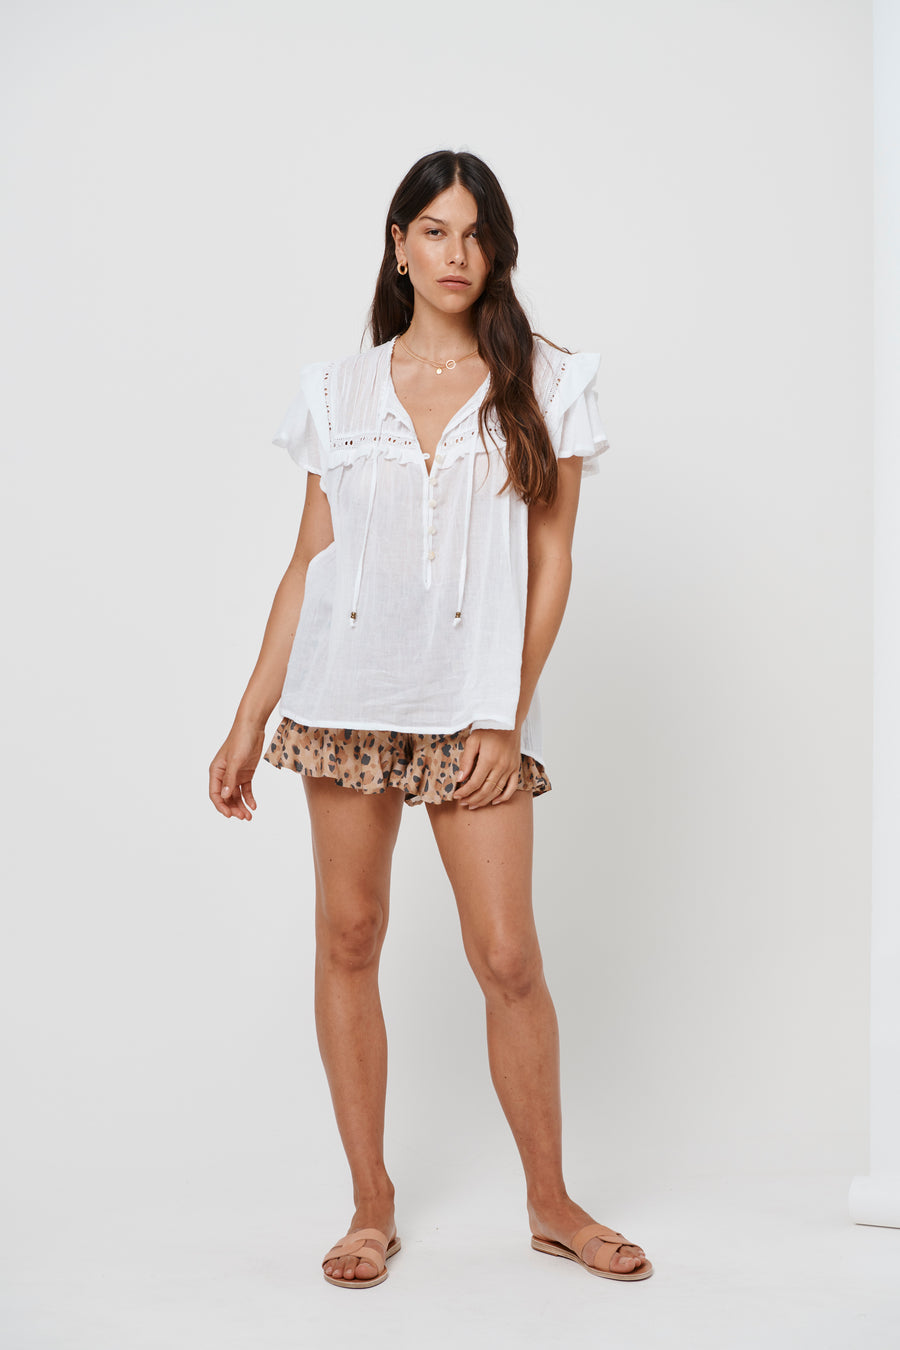 Kivari Camille White Short Sleeve Blouse